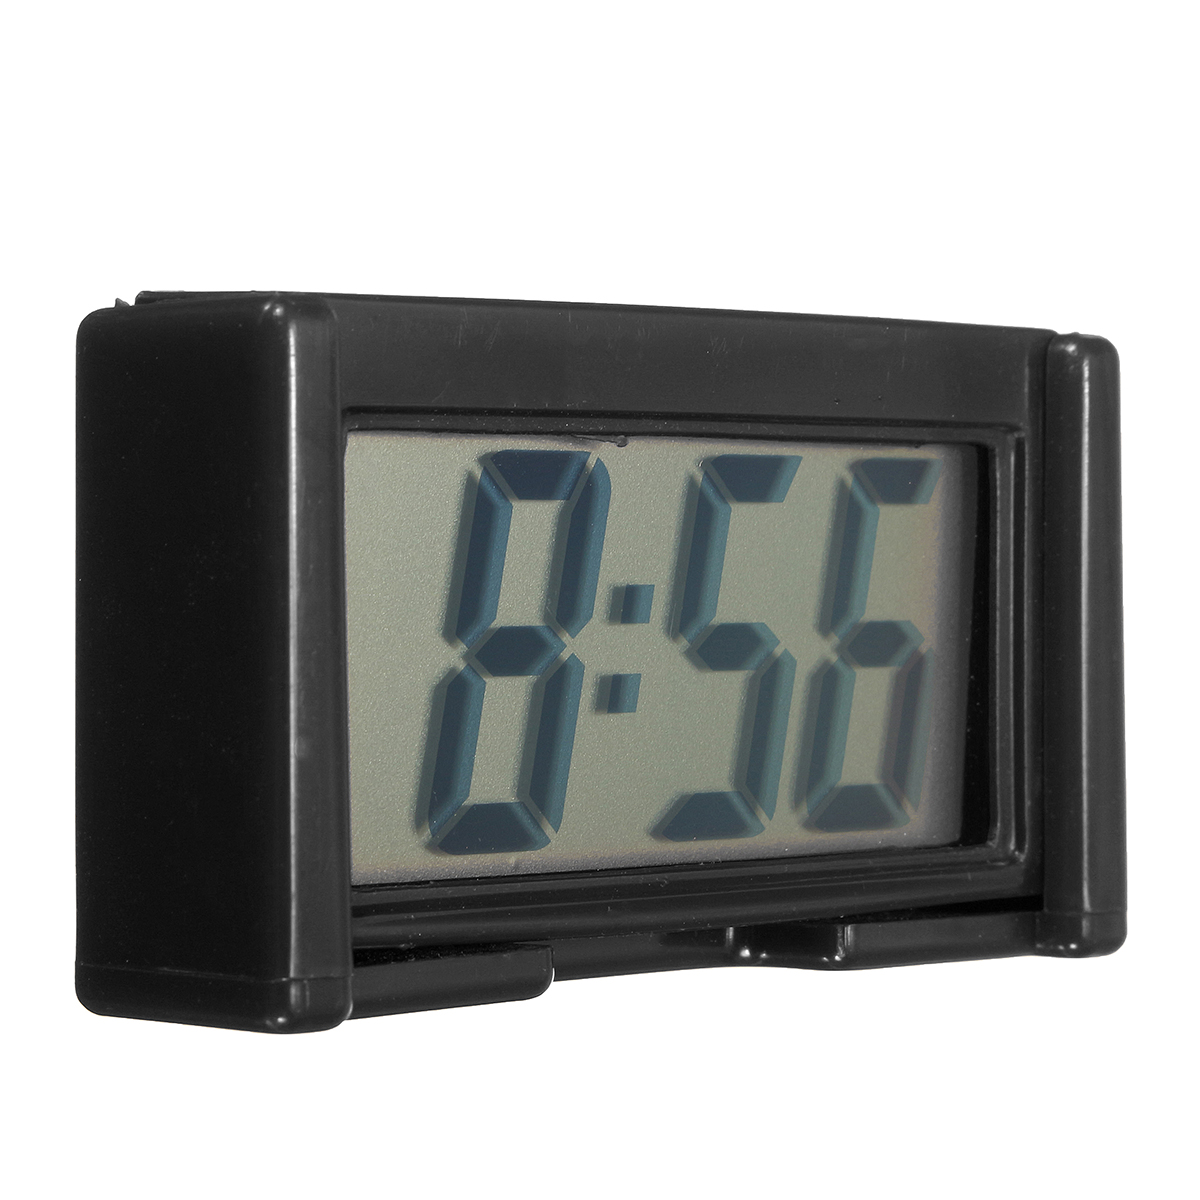 Digital Clock For Sale 4 Colors Automotive Digital Car Lcd Clock Self Adhesive